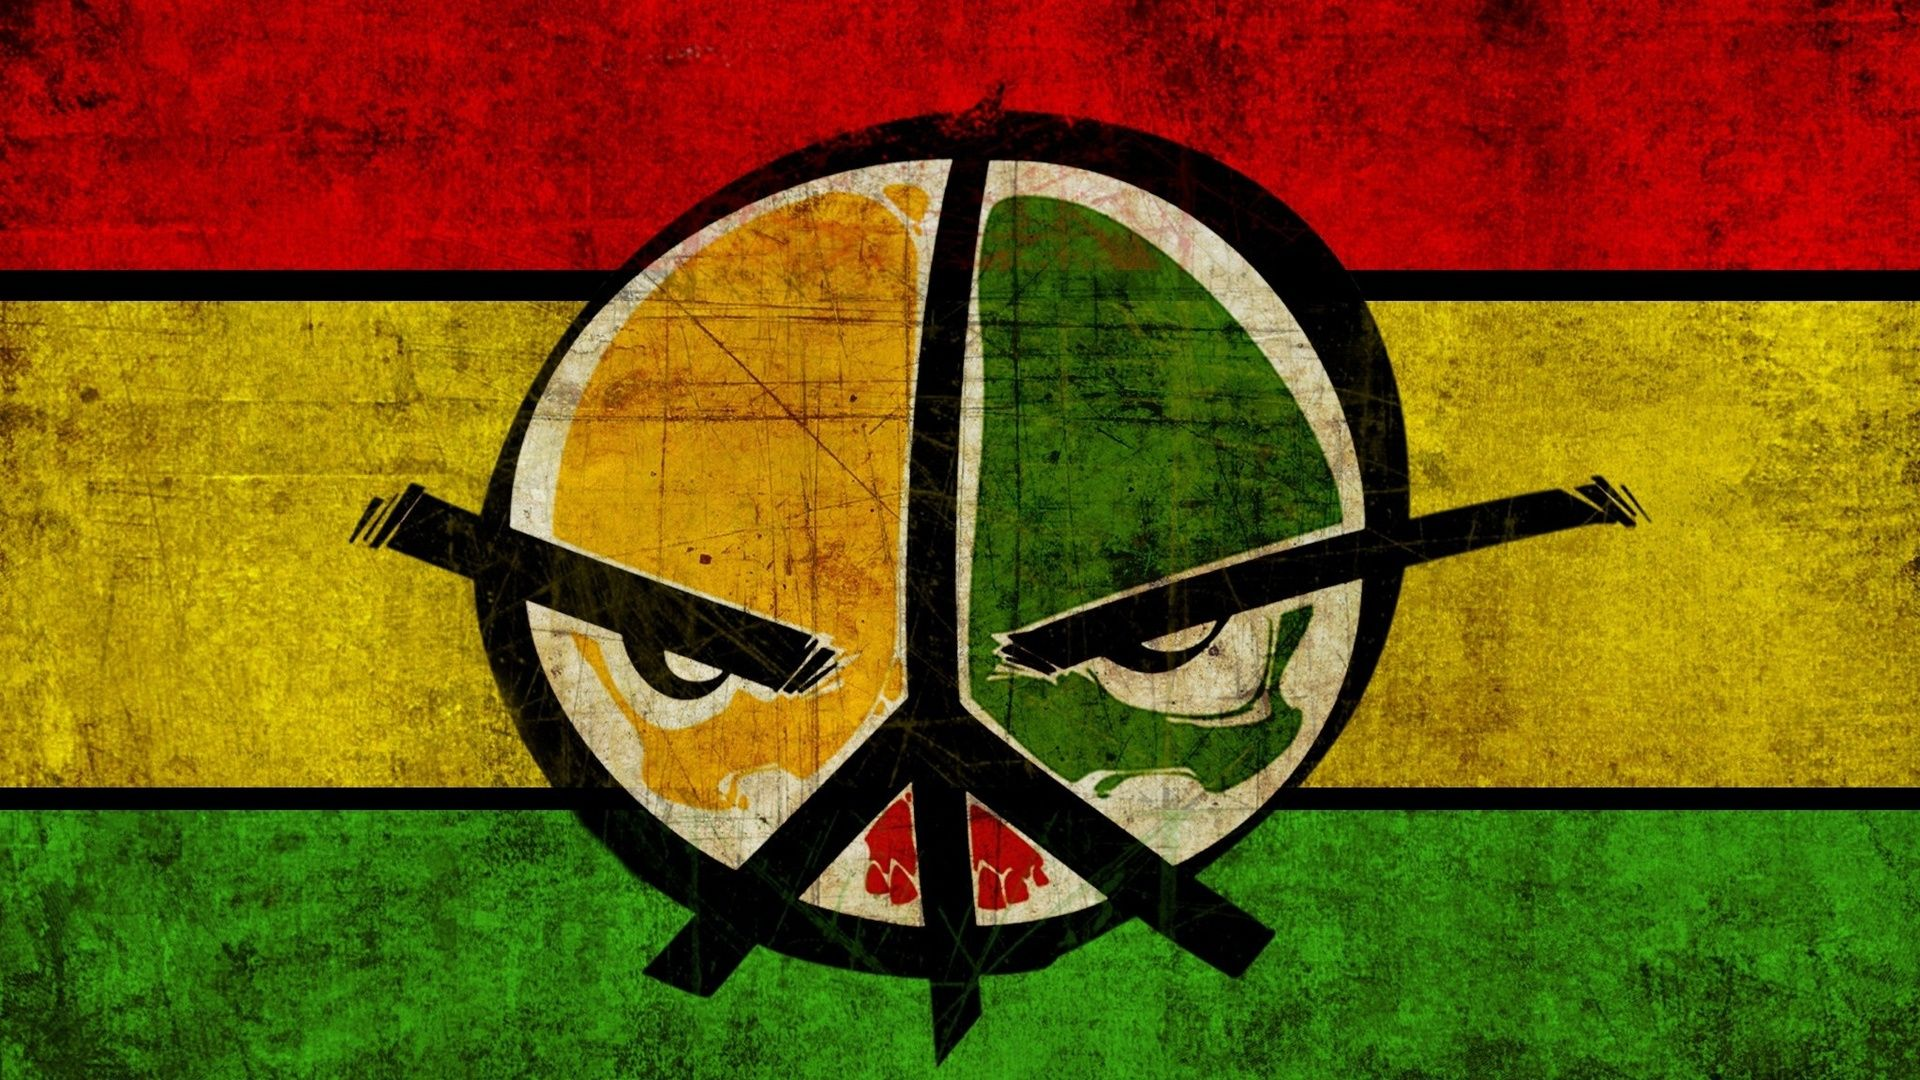 Peace 1080p background